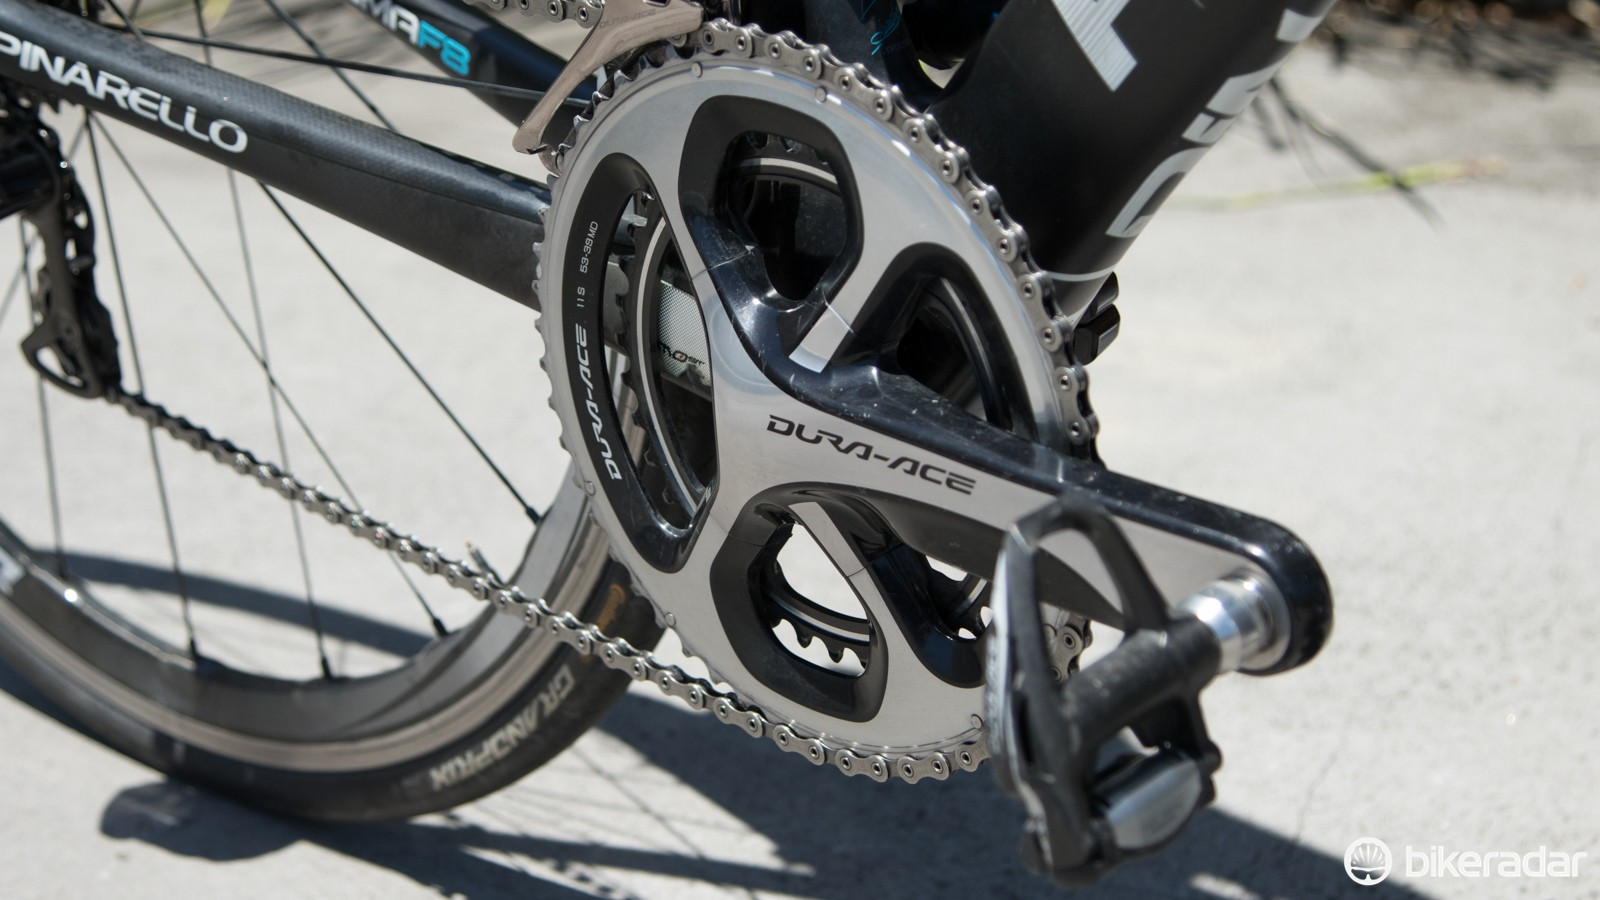 Earle uses a standard 53/39T Shimano Dura-ace 9000 crankset with a matching Stages power meter left arm